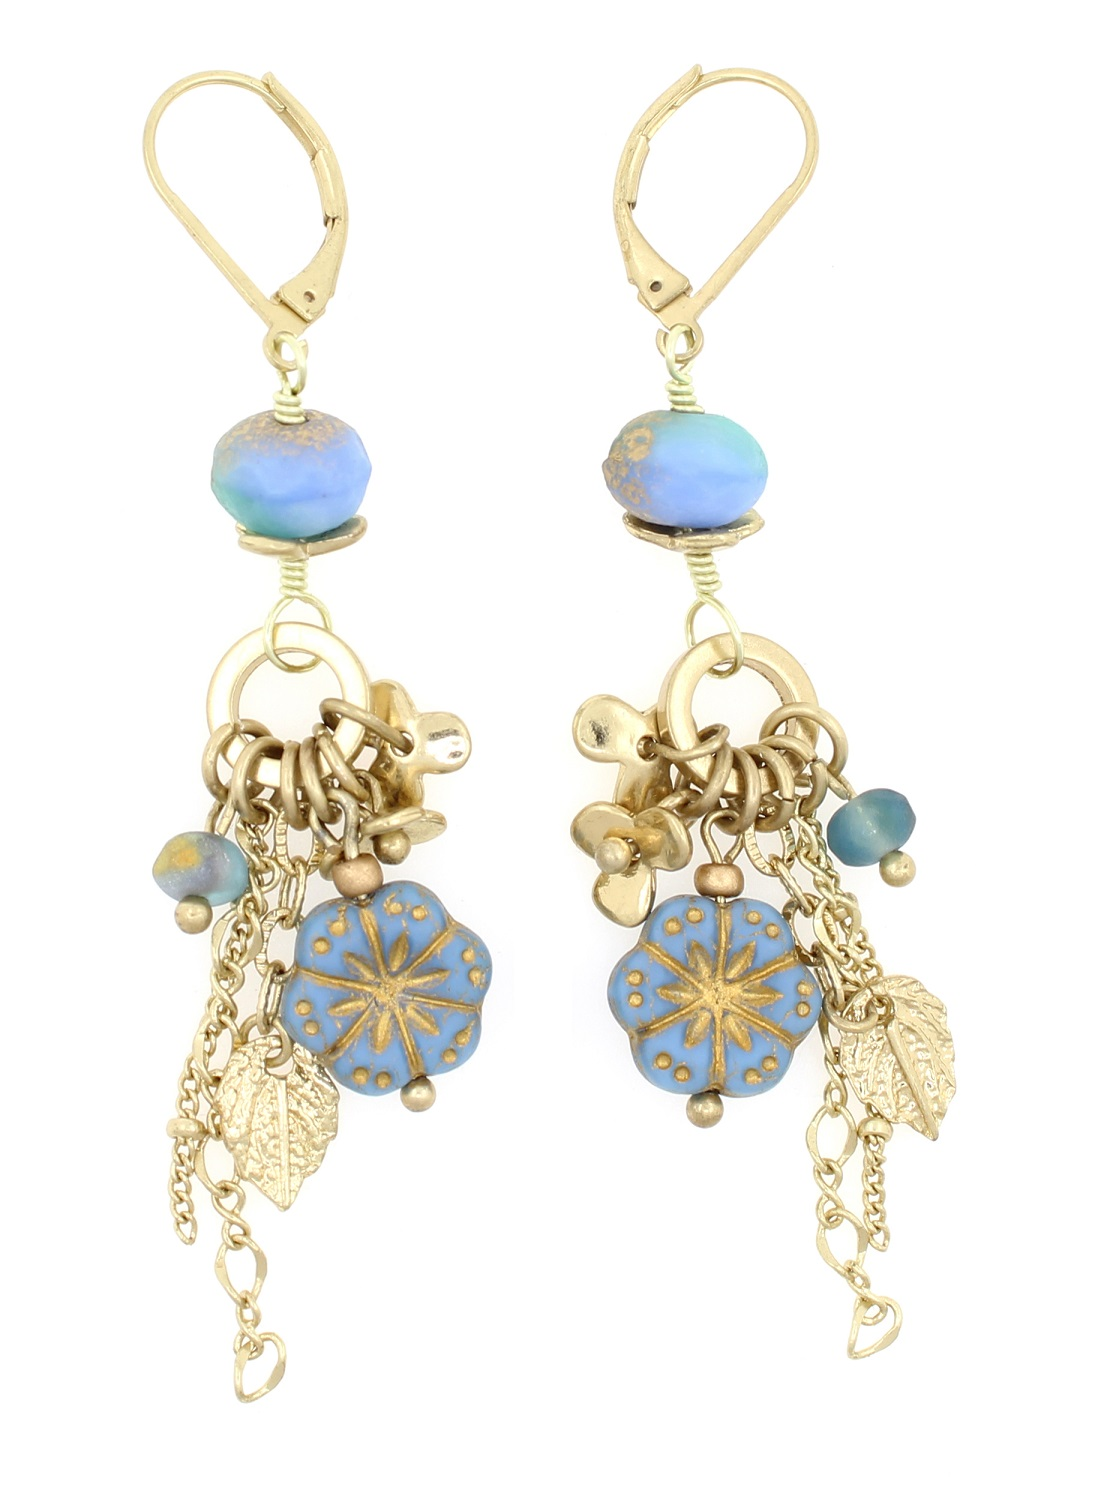 Prunus Flower Czech Glass Earrings - Wedgewood Blue, Aqua Green - 9KT Gold Plated BNWT